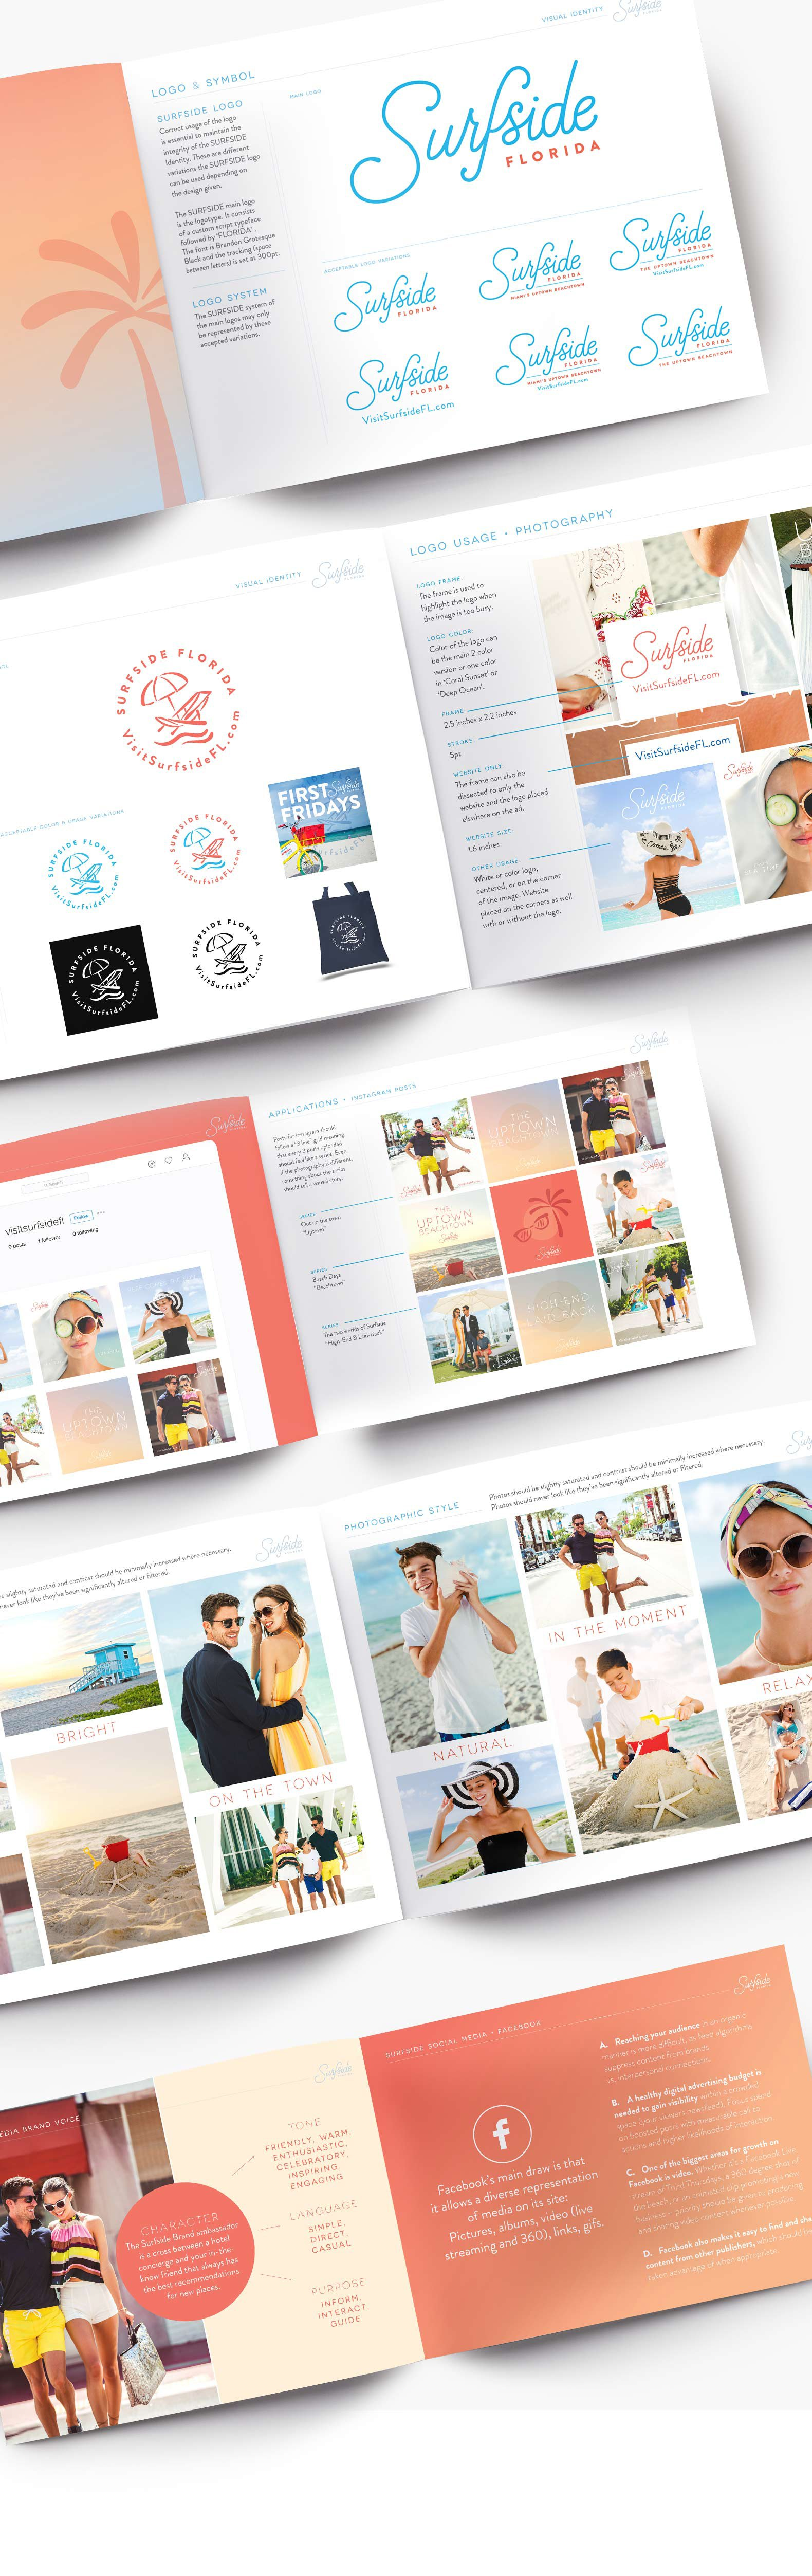 surfside-2017-BrandBook.jpg